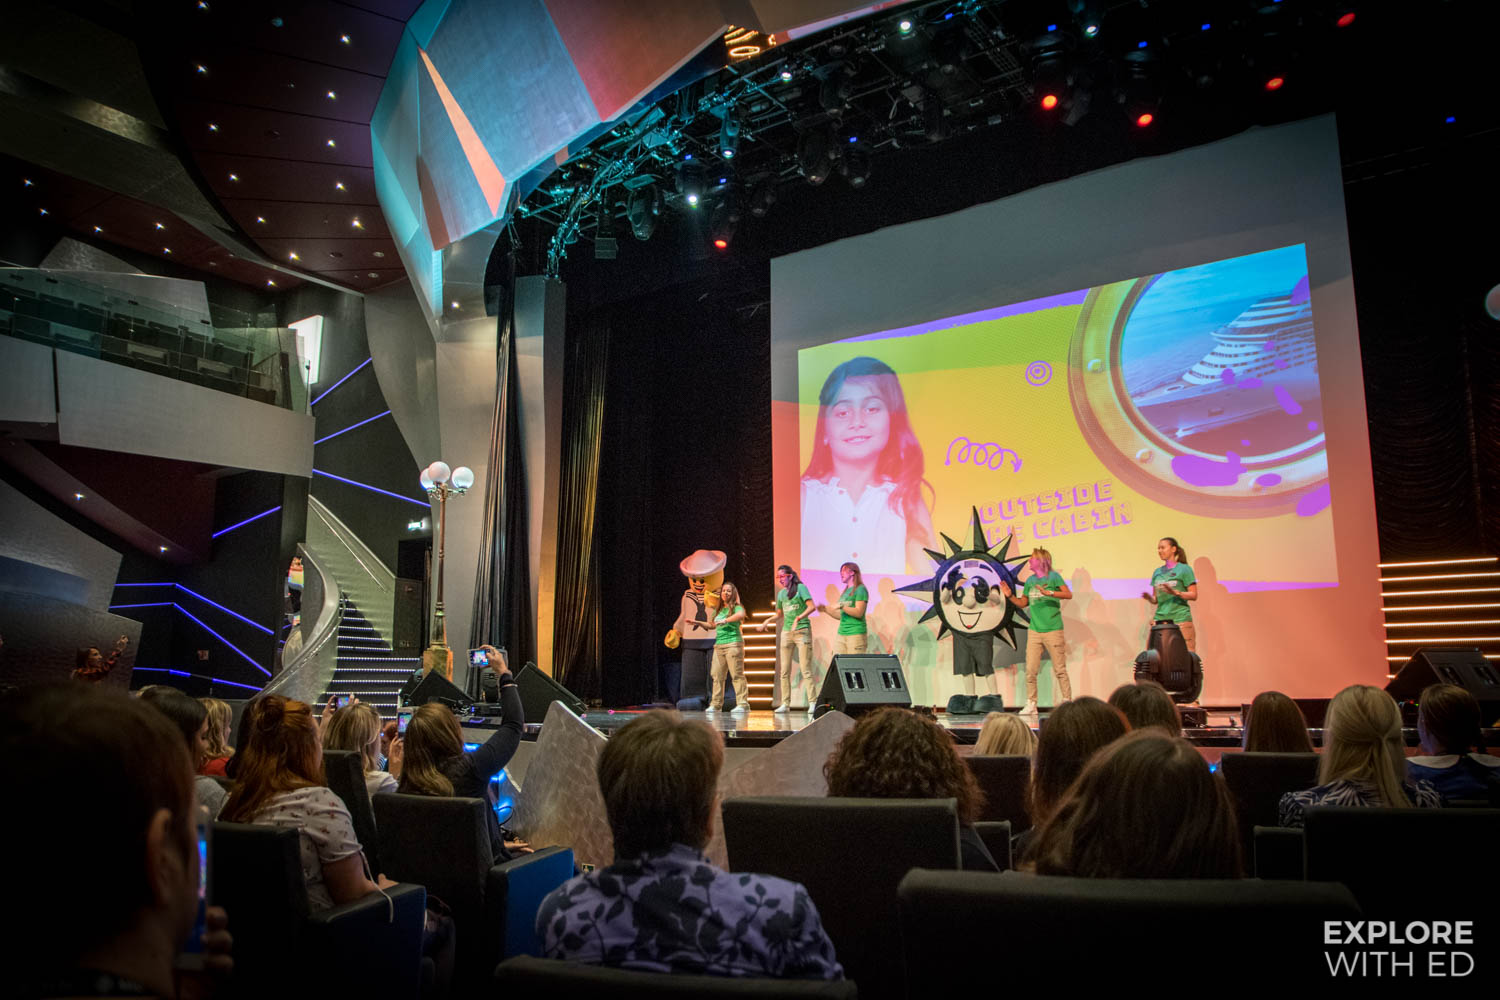 MSC cruises children's entertainment